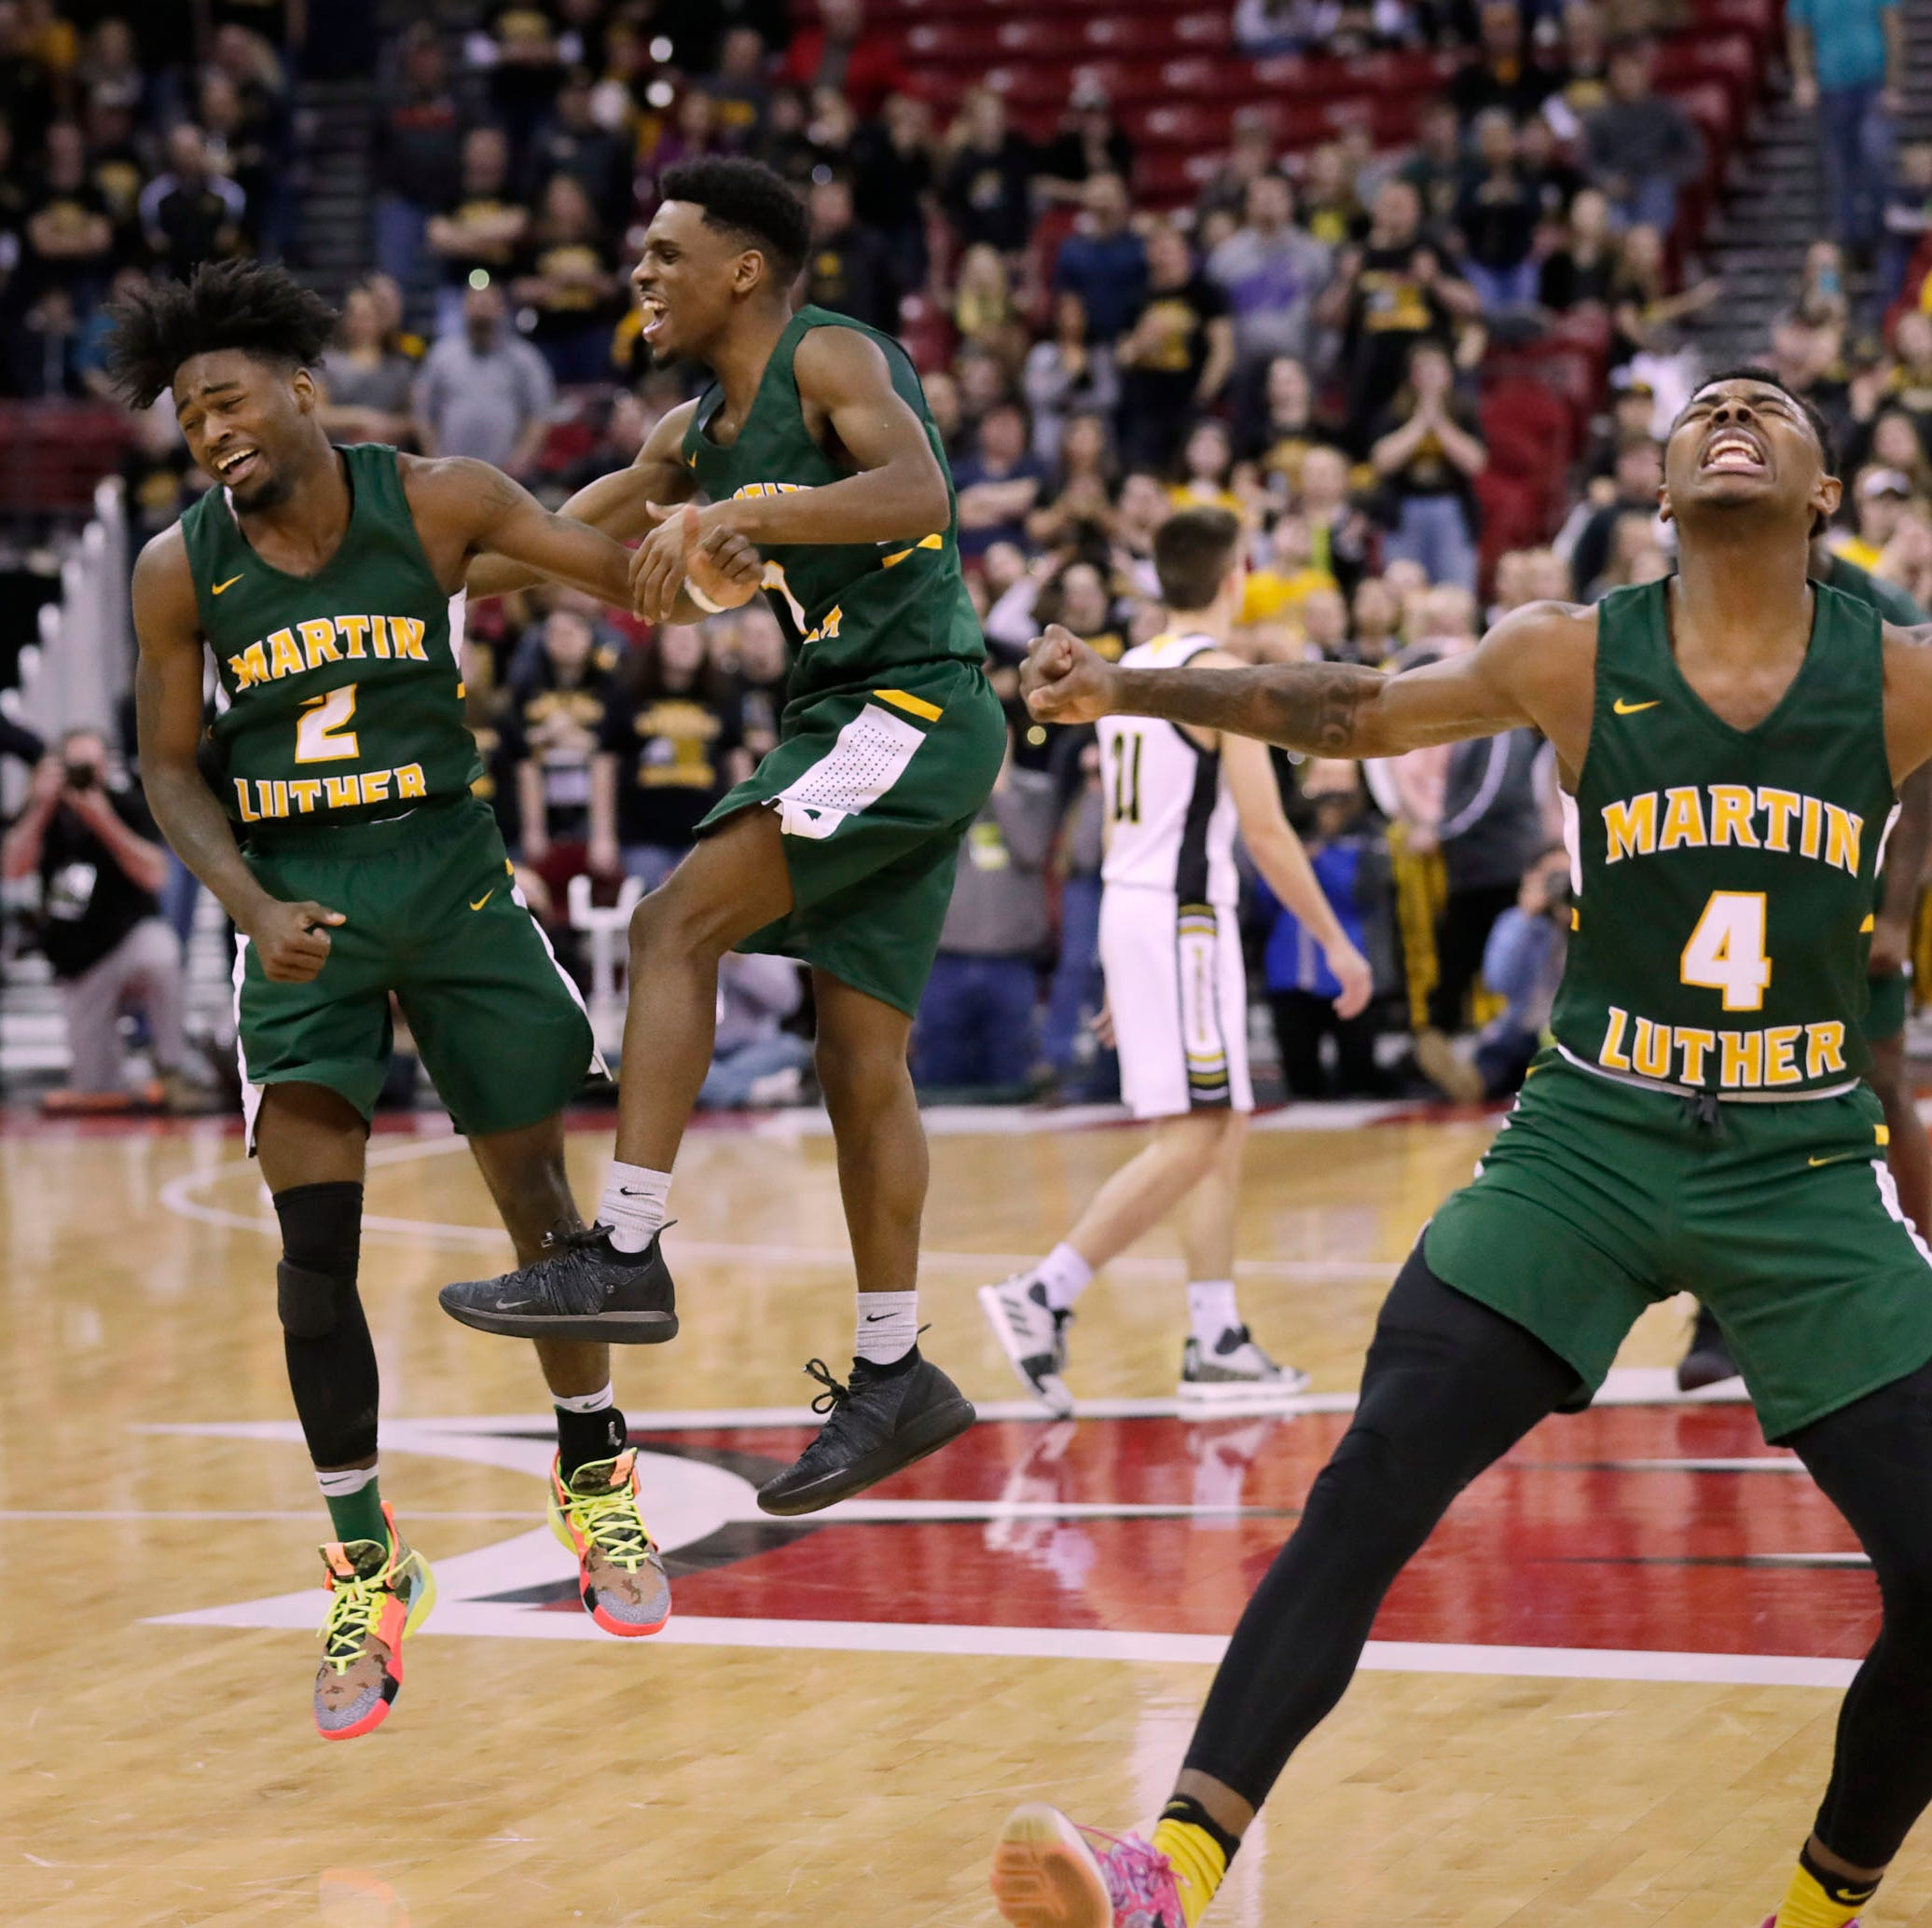 Martin Luther's backcourt does the job one last time and leads the school to its first state championship